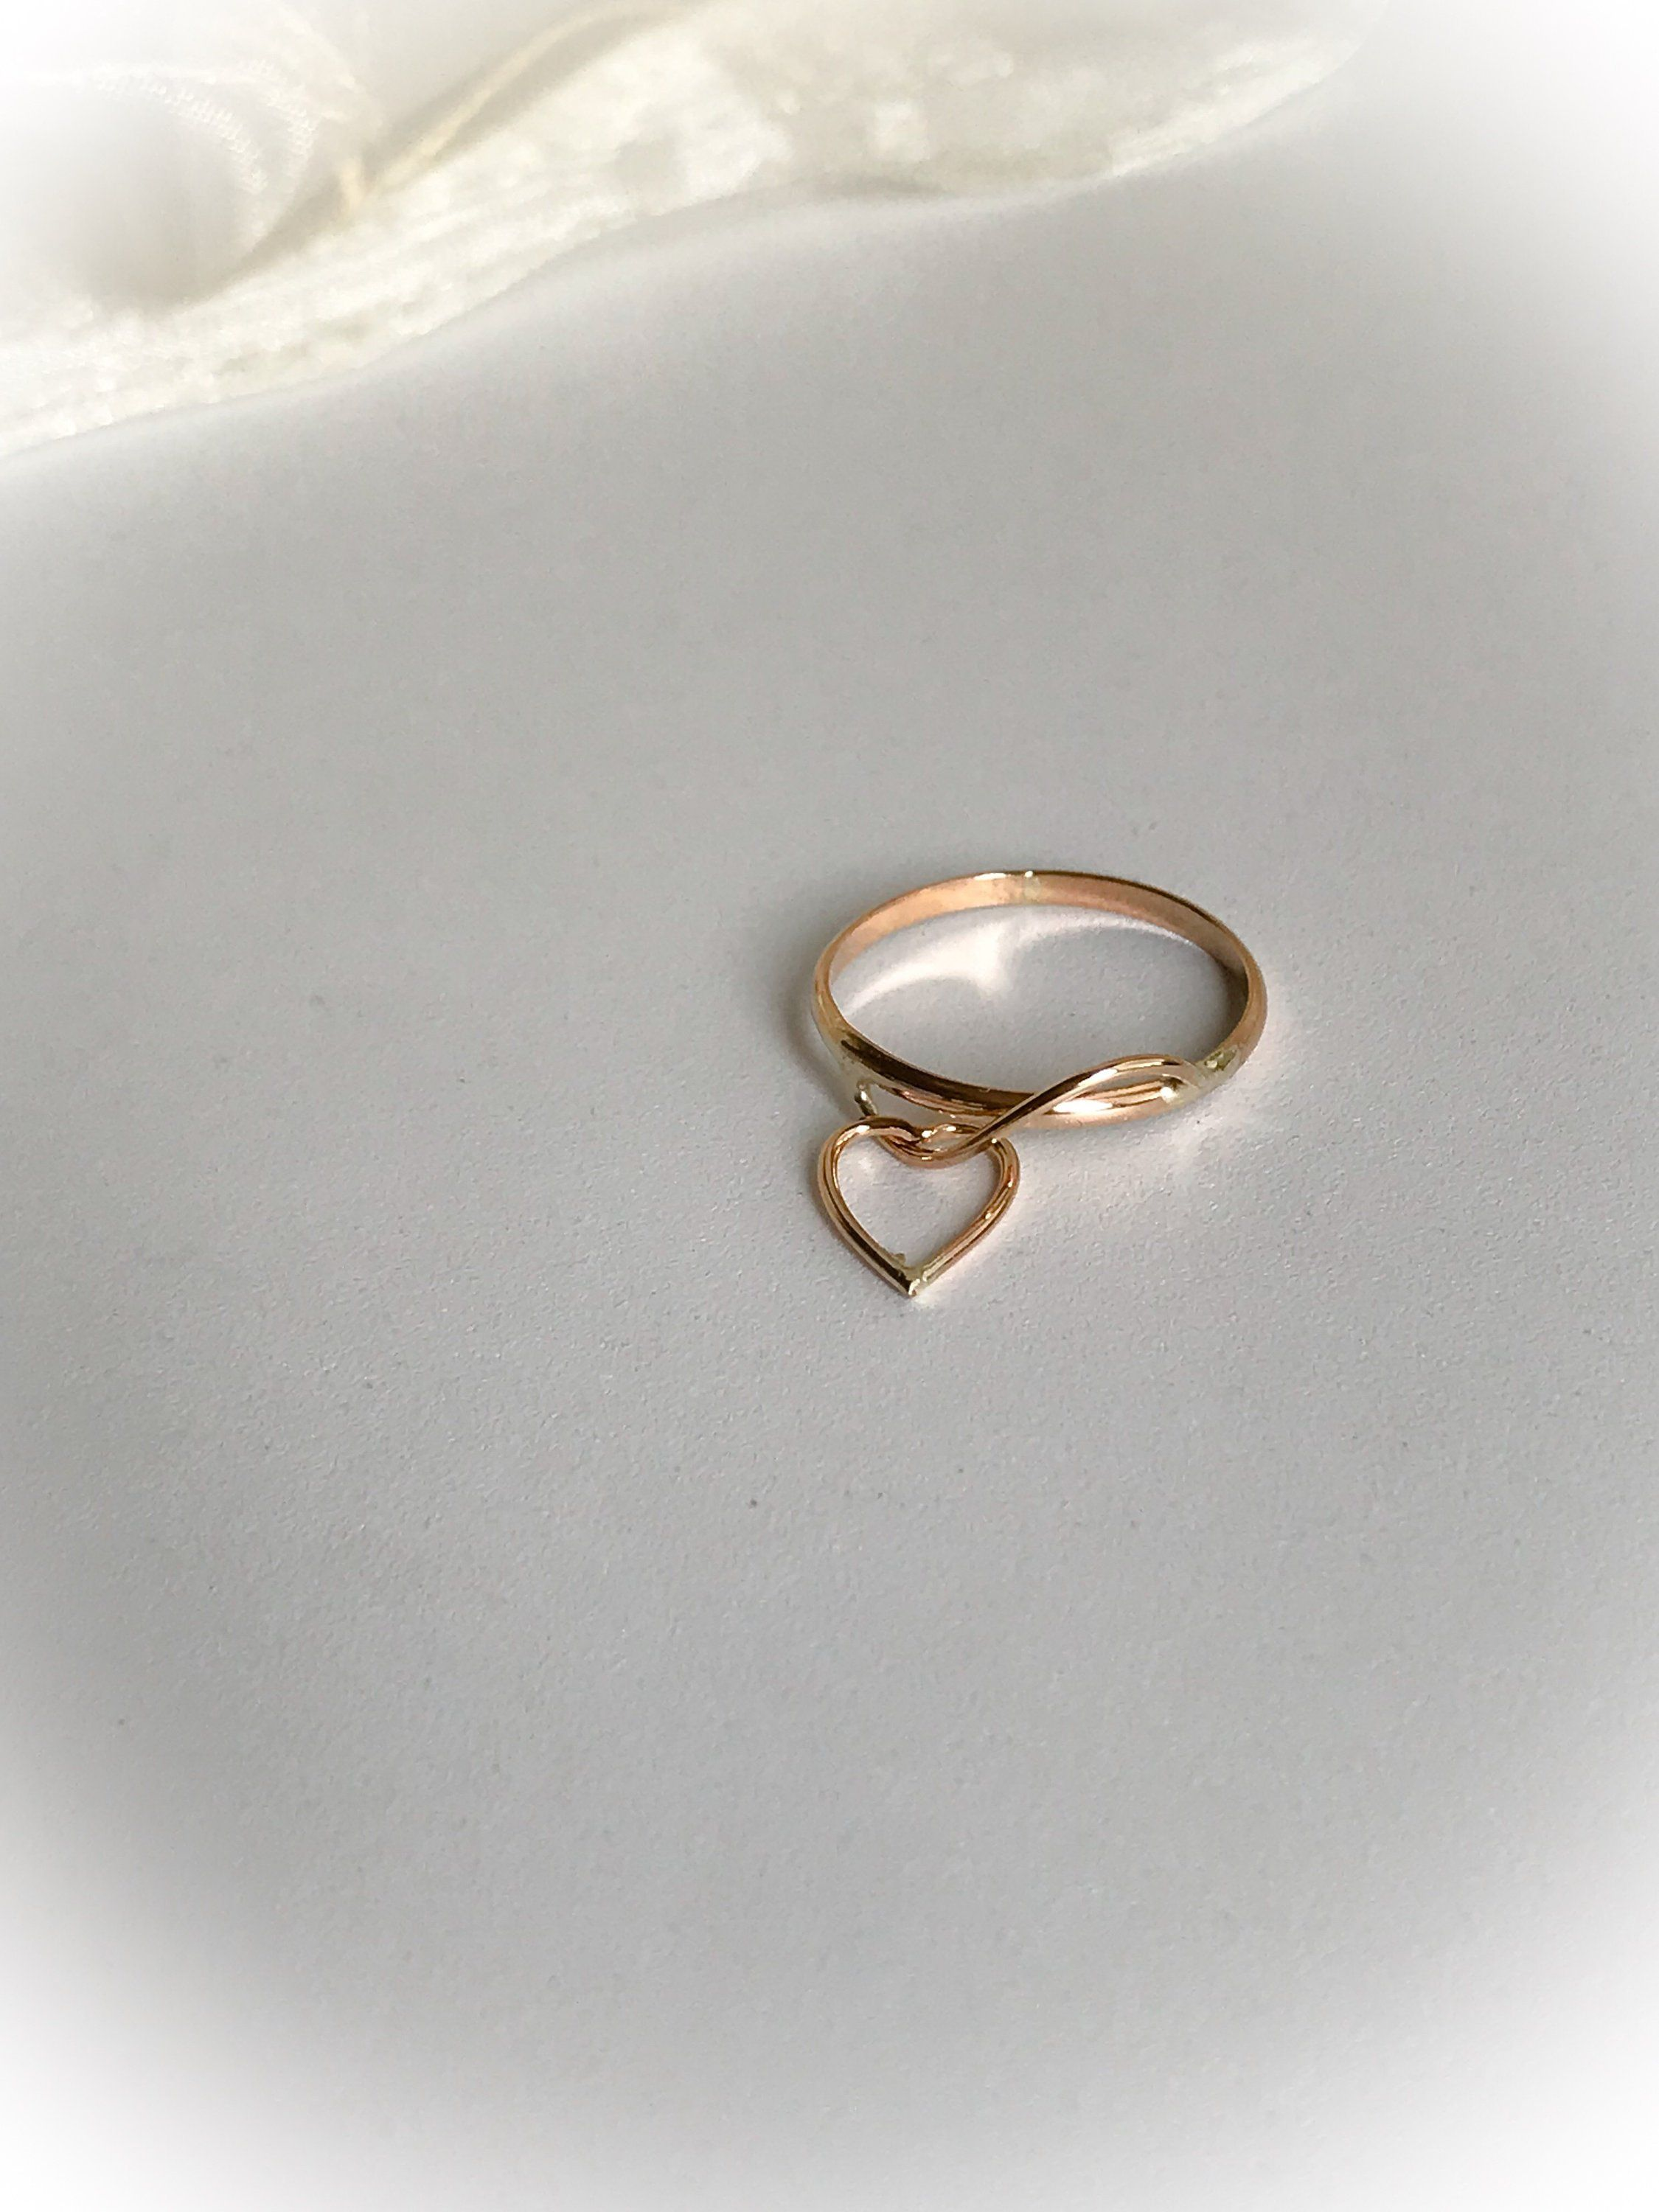 Unique 12 Karat Gold Filled Wire Ring With Heart Charm Dangle High Polish Finish Plain 1 5mm Wide Band Ring Measures Rings For Her Gold Wire Ring Charm Rings